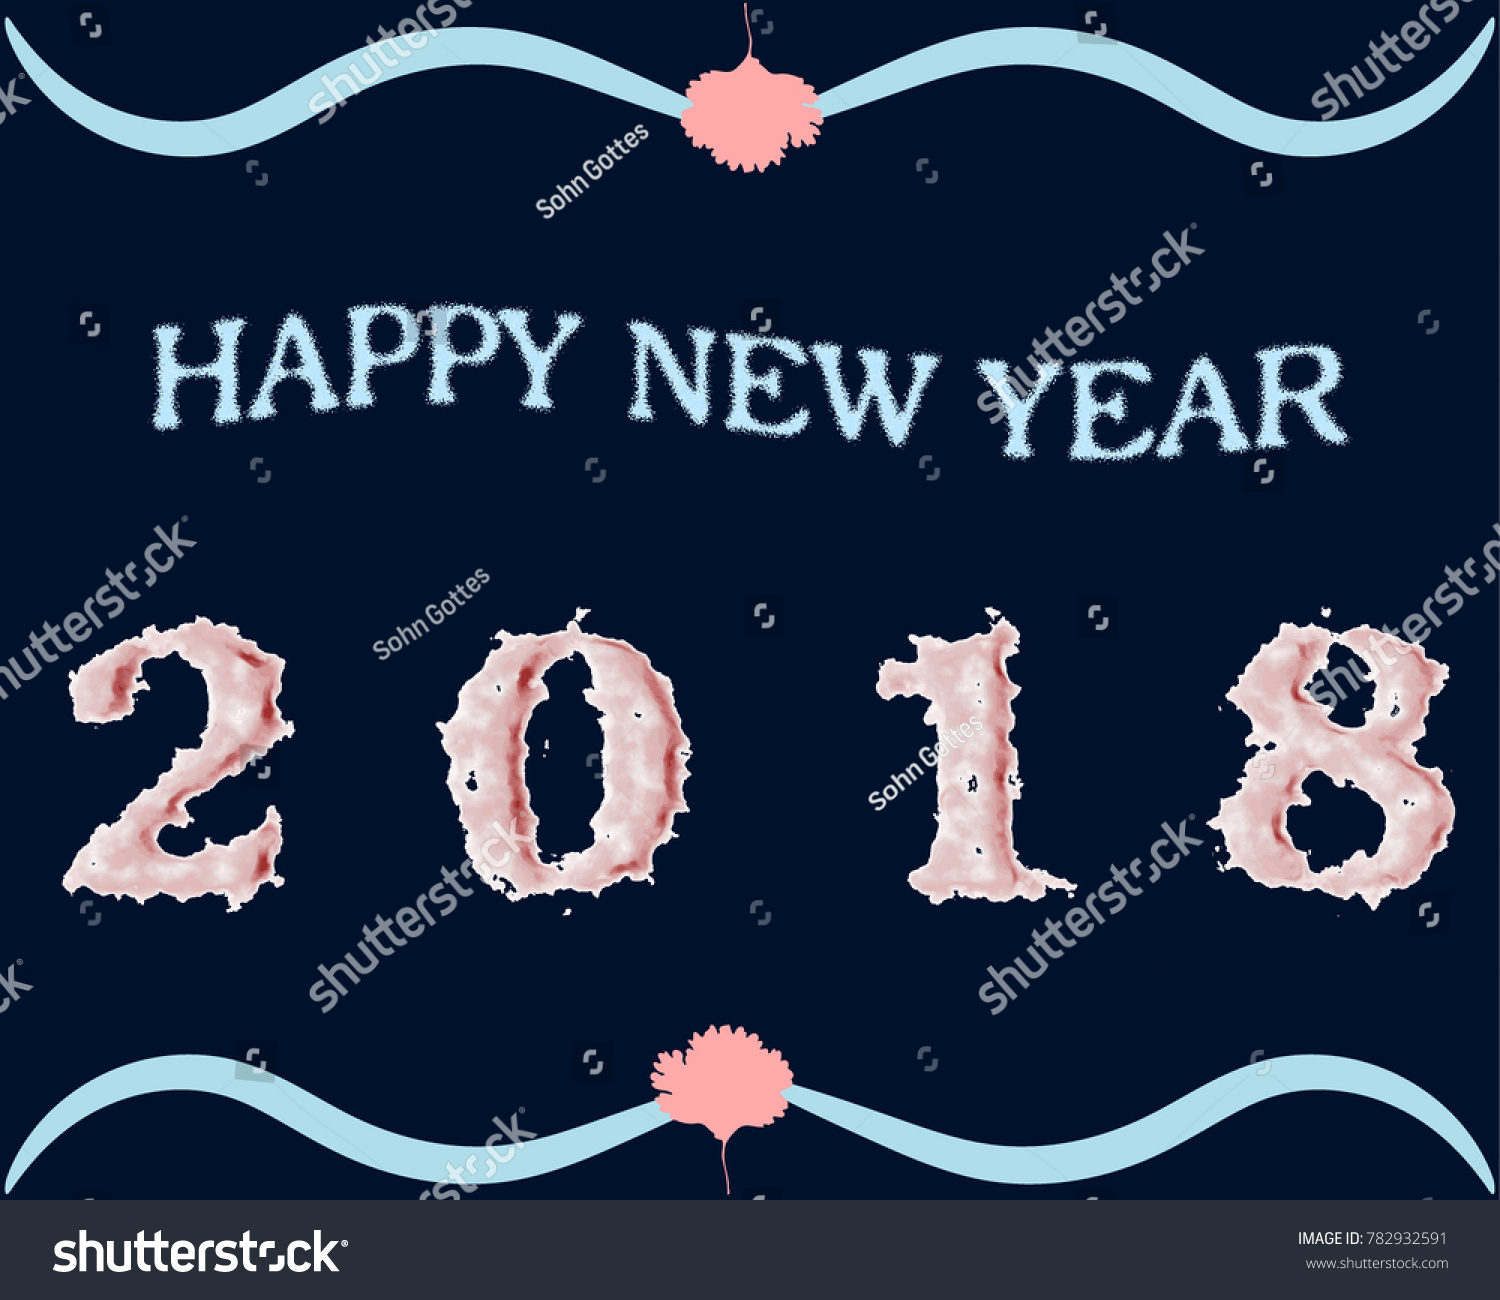 stock-vector-happy-new-year-abstract-dec